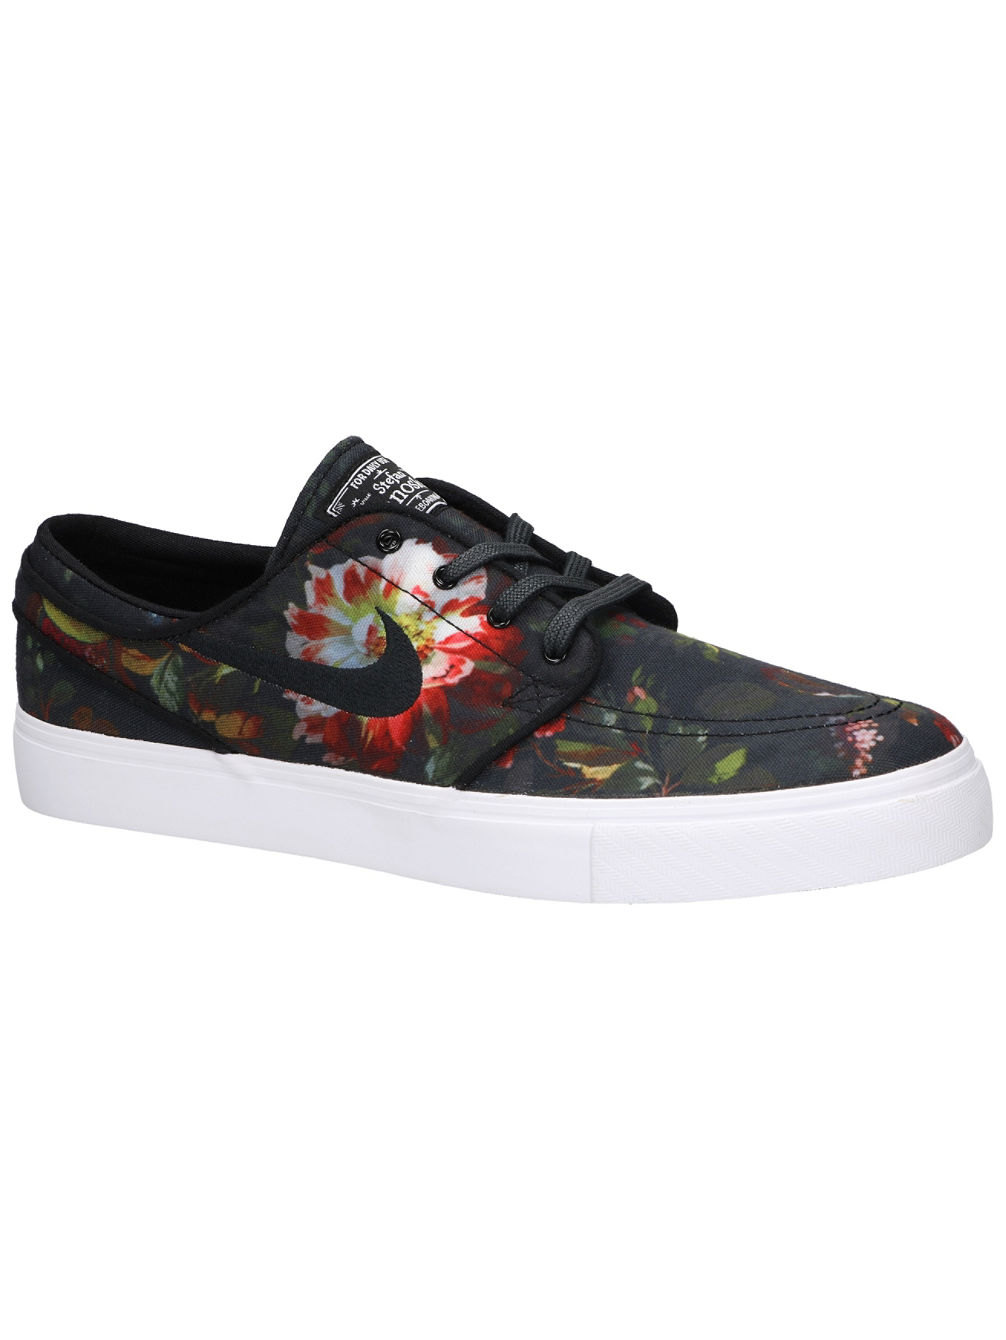 Buy Nike Zoom SB Stefan Janoski Skate Shoes online at blue-tomato.com 29e999c9f90c